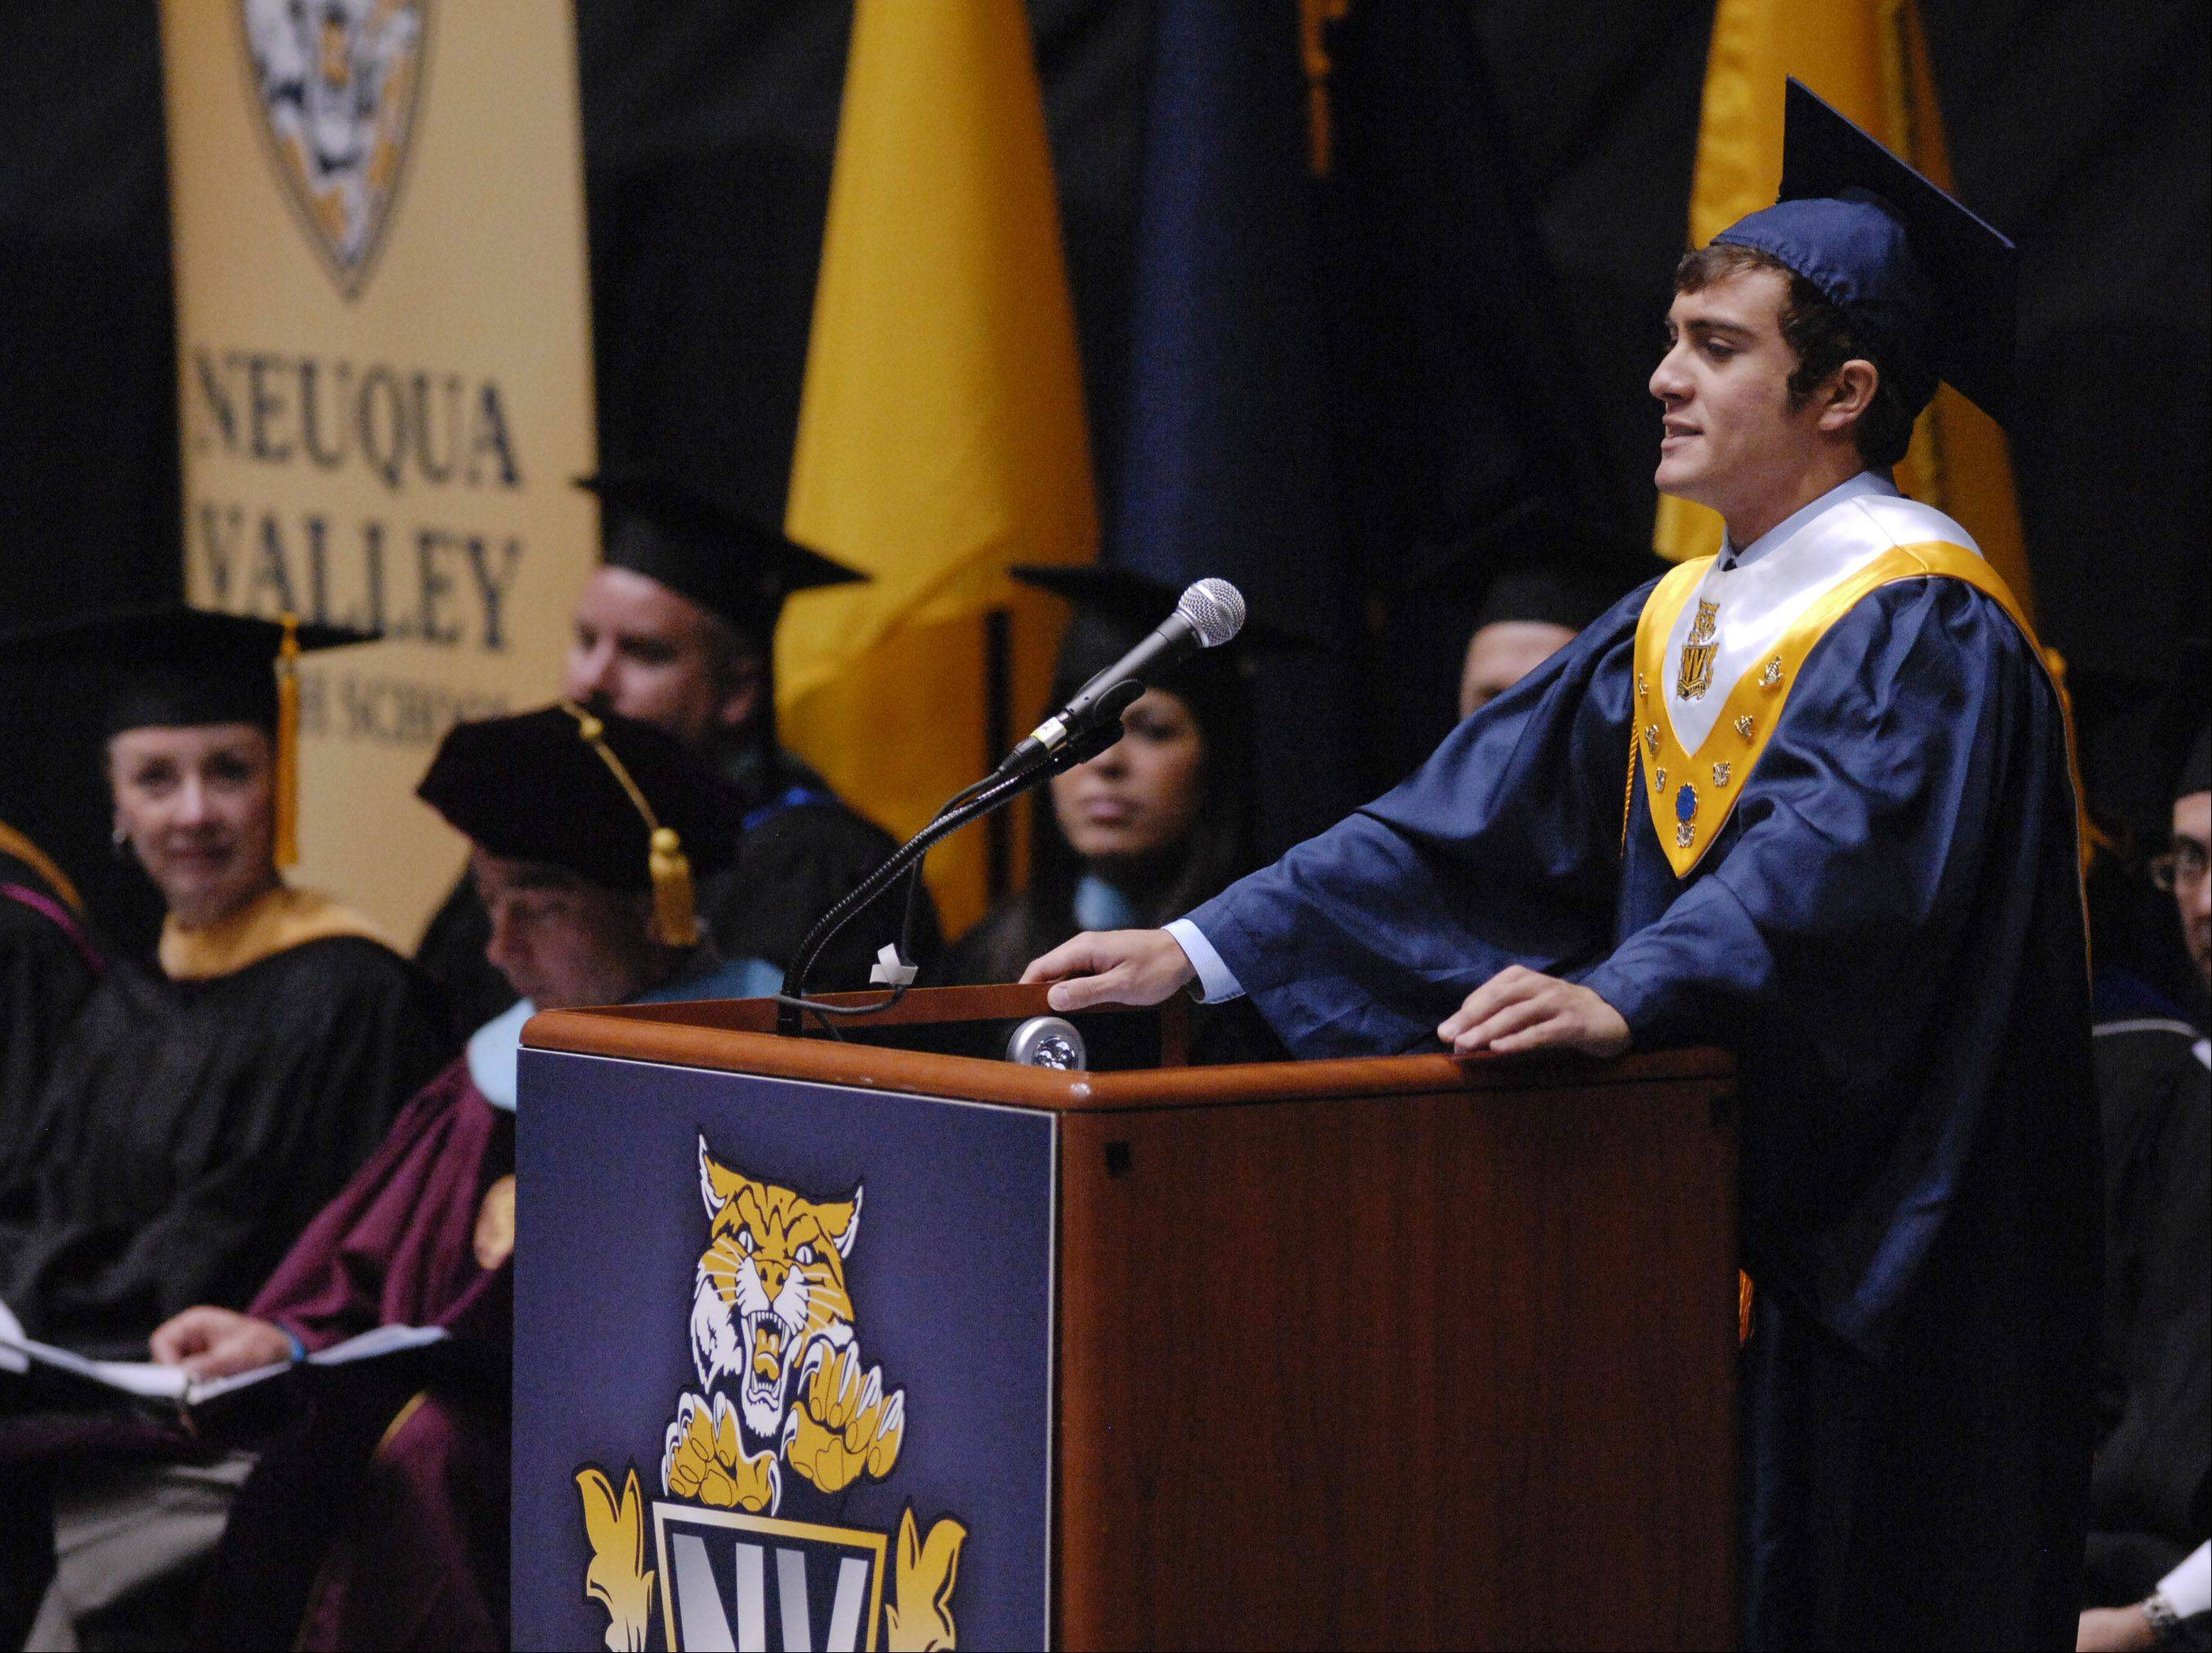 Gian Luis Delgado gives the Senior Academic Farewell during the Neuqua Valley High School graduation on Sunday, May 26 at the NIU Convocation Center in DeKalb.